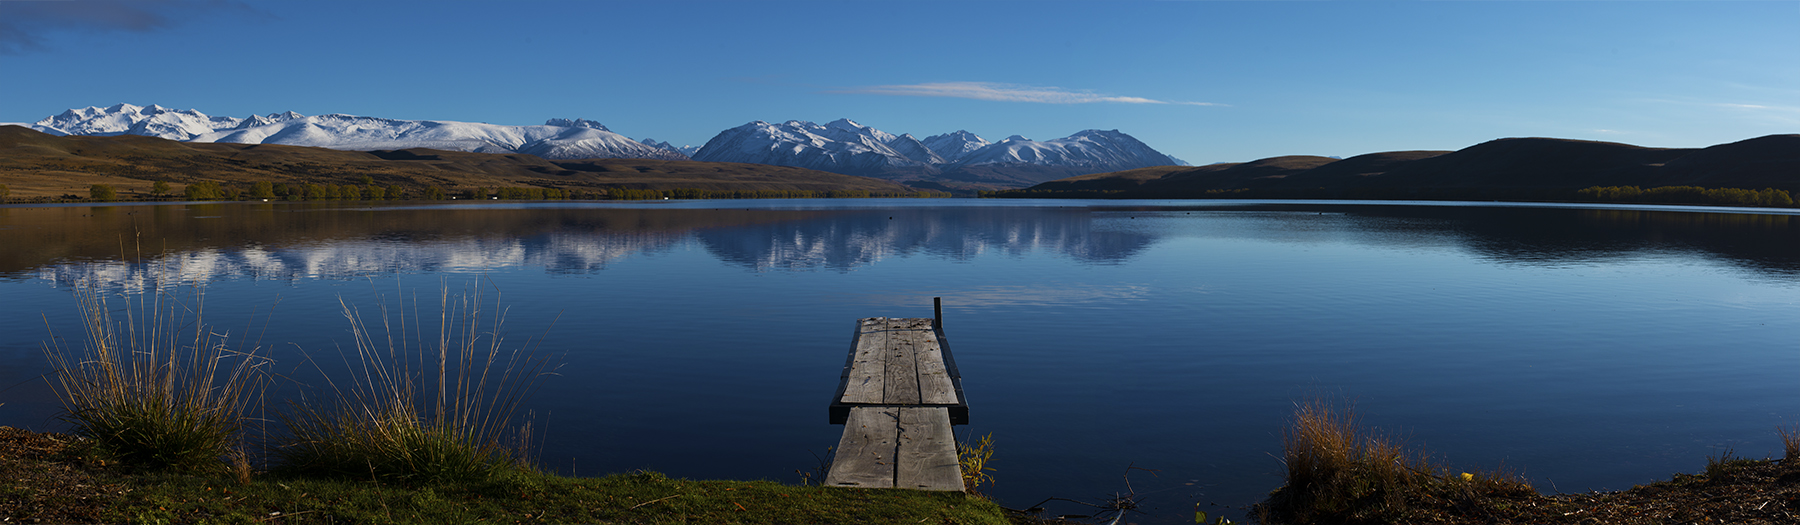 Lake Alexandrina, New Zealand. A Limited Edition Fine Art Landscape Photograph by Richard Hume